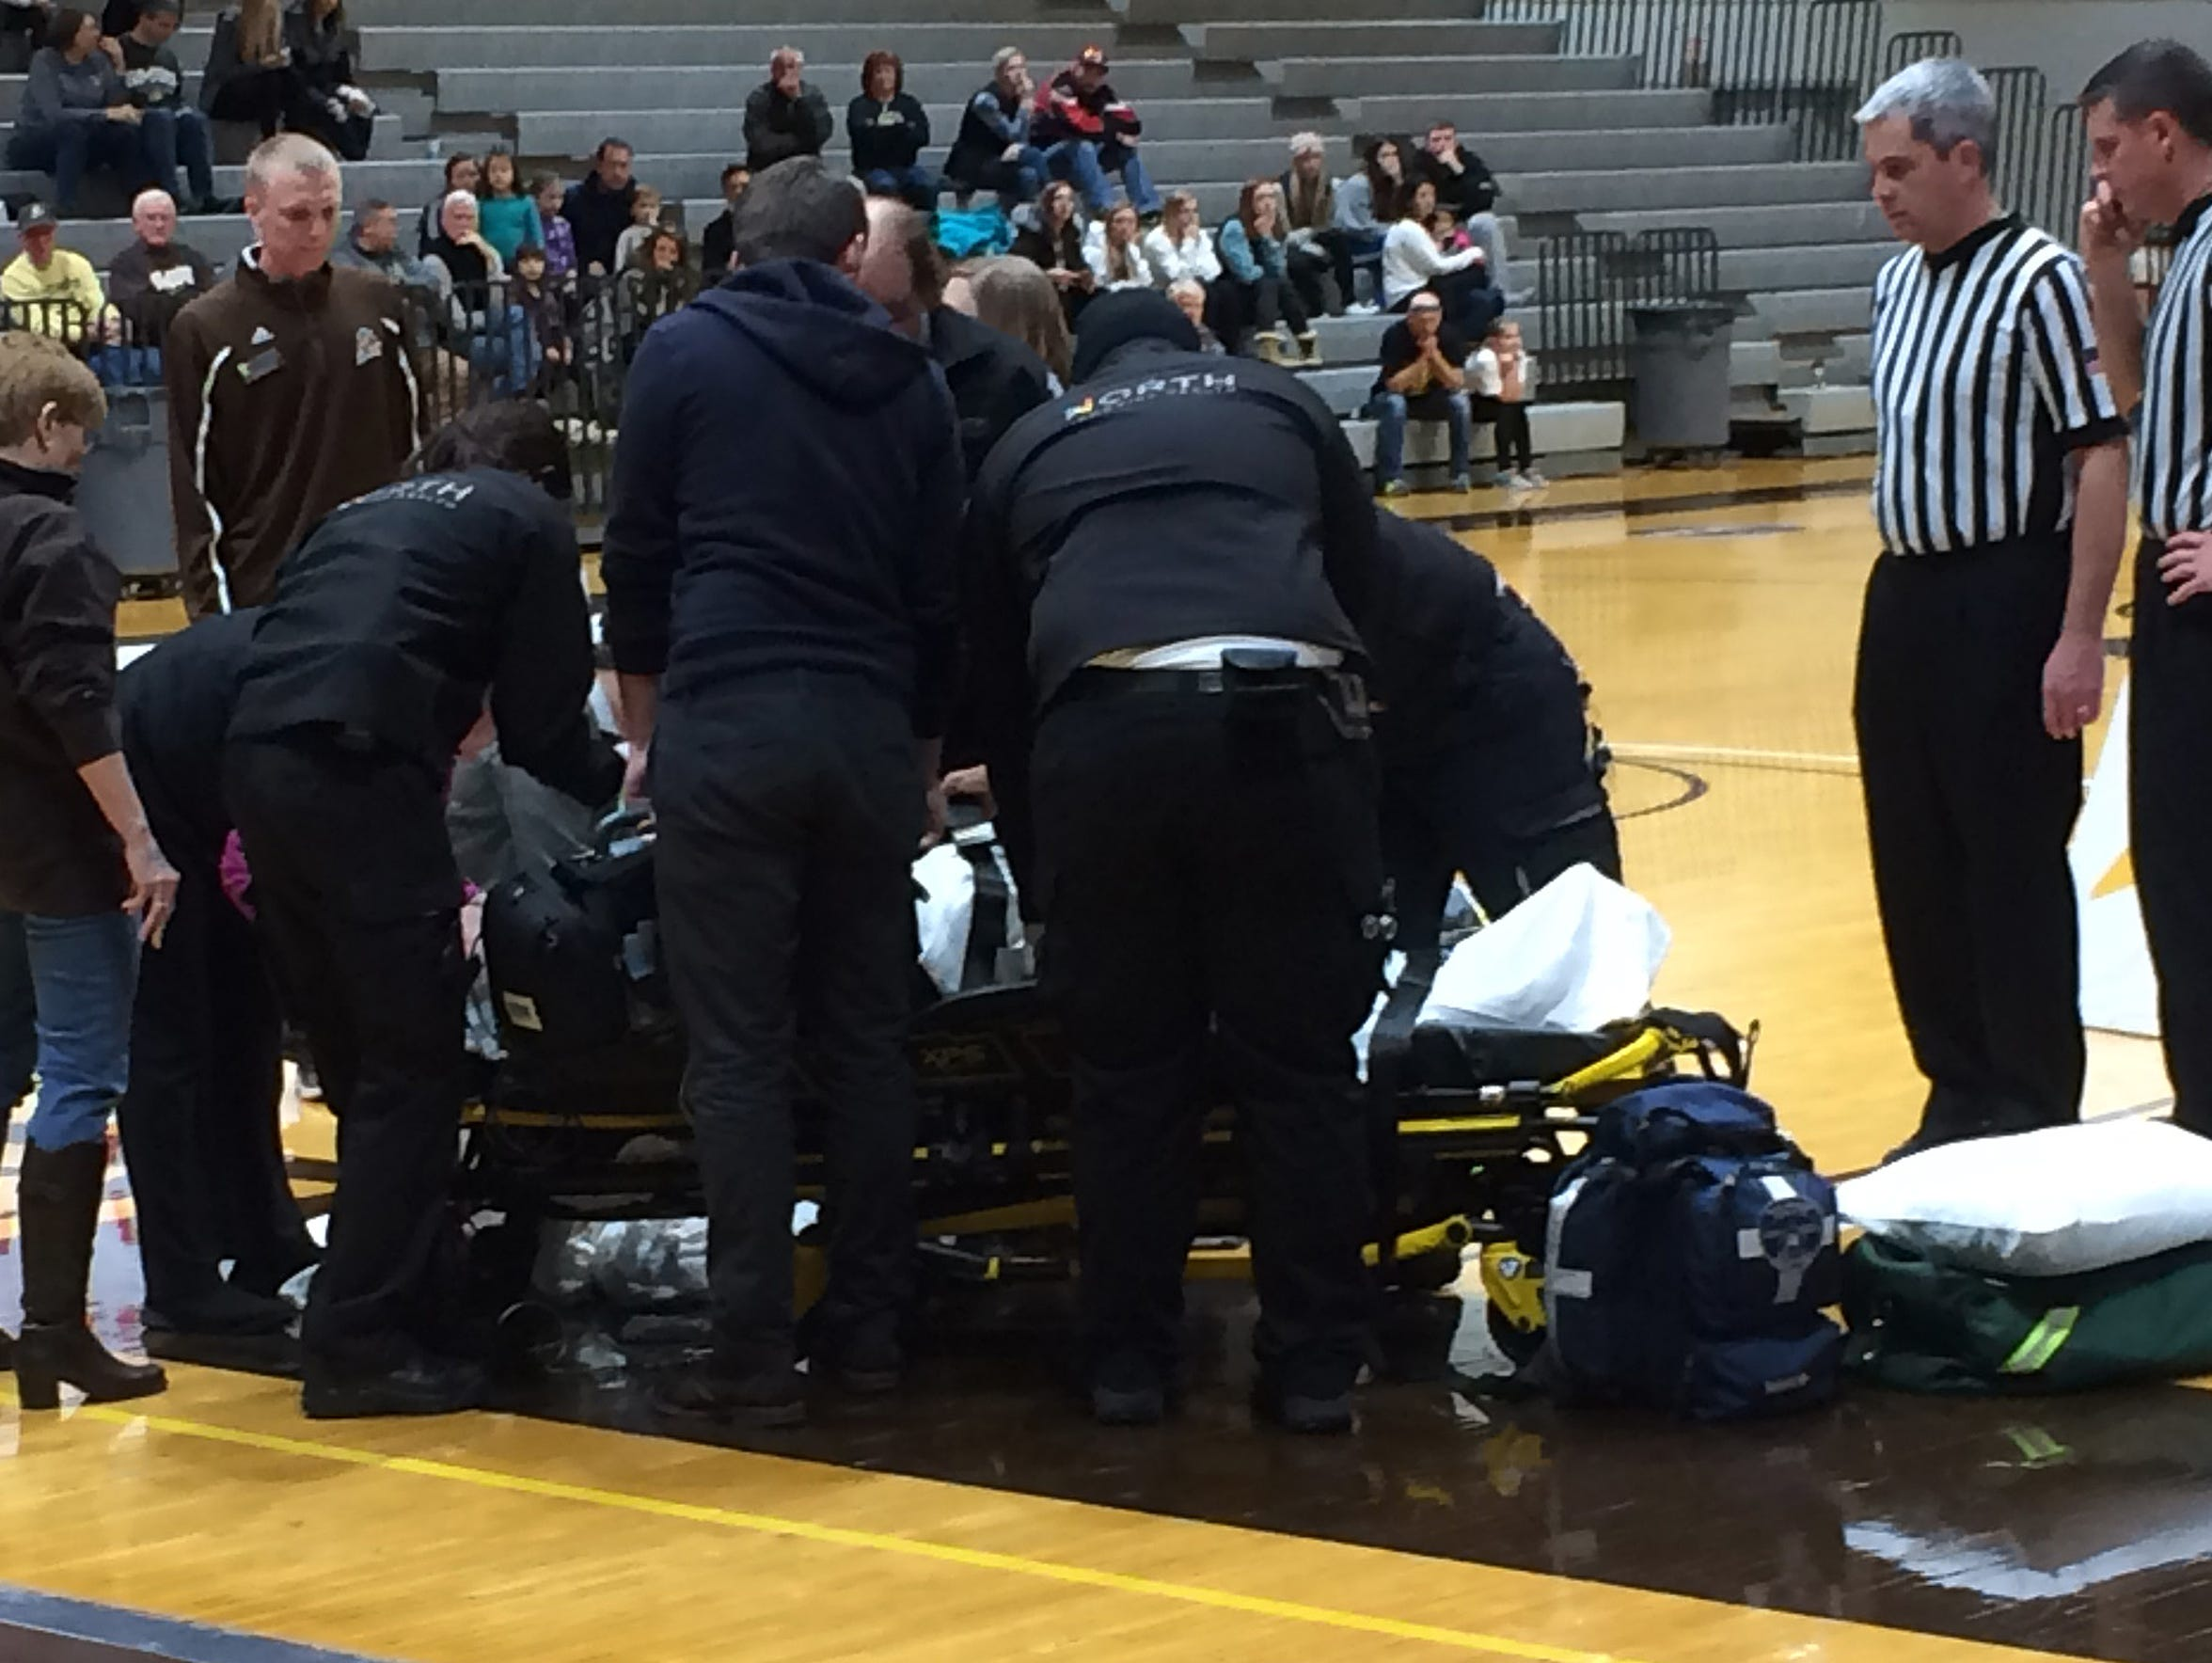 Jeff Schroder was treated by athletic trainers and